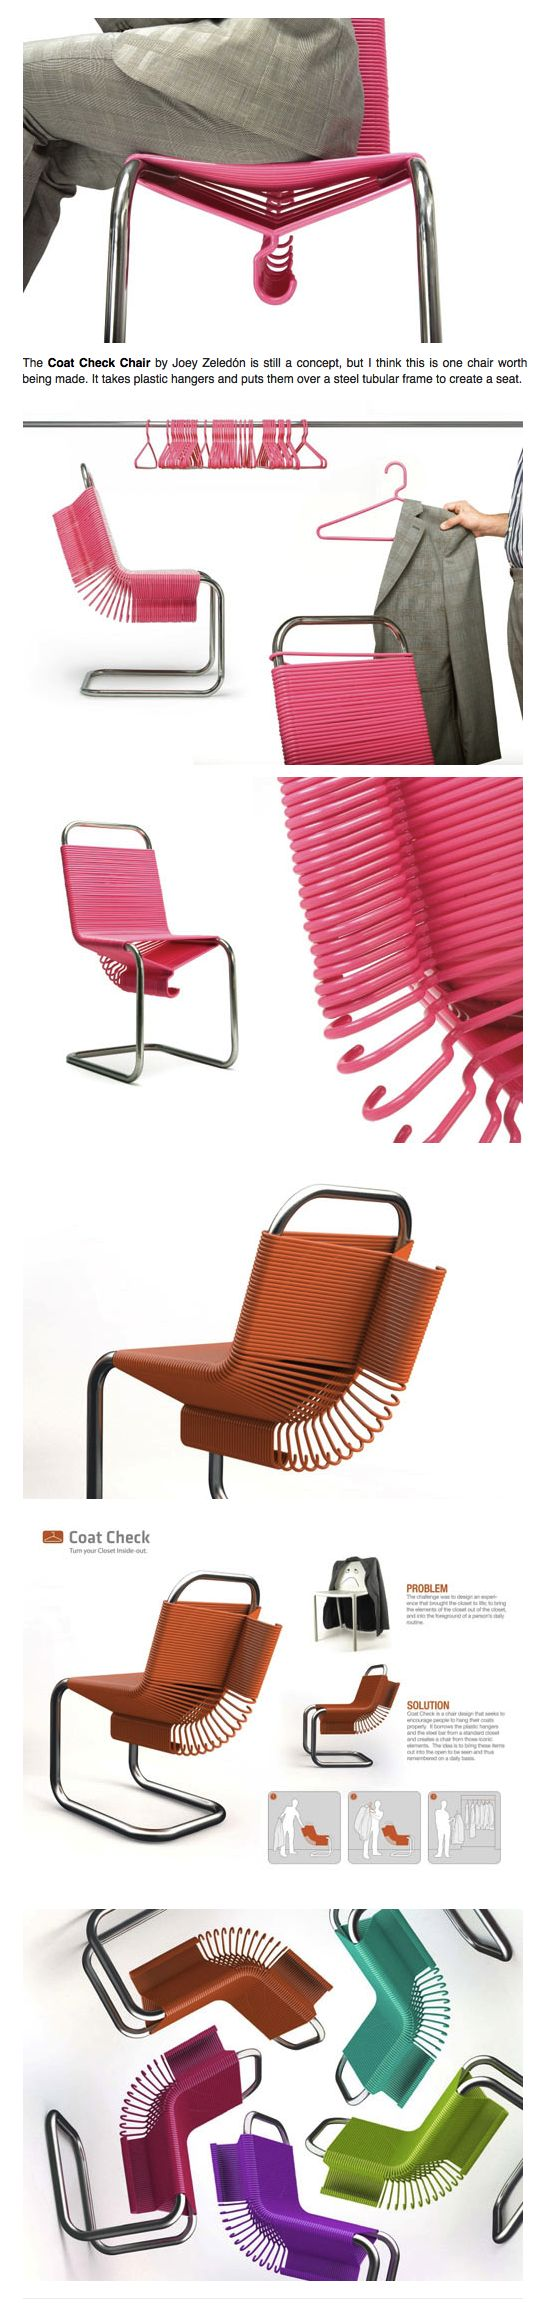 The Coat Check Chair. The chair uses plastic hangers over a steel frame to form the back & seat. Joey Zeledón.